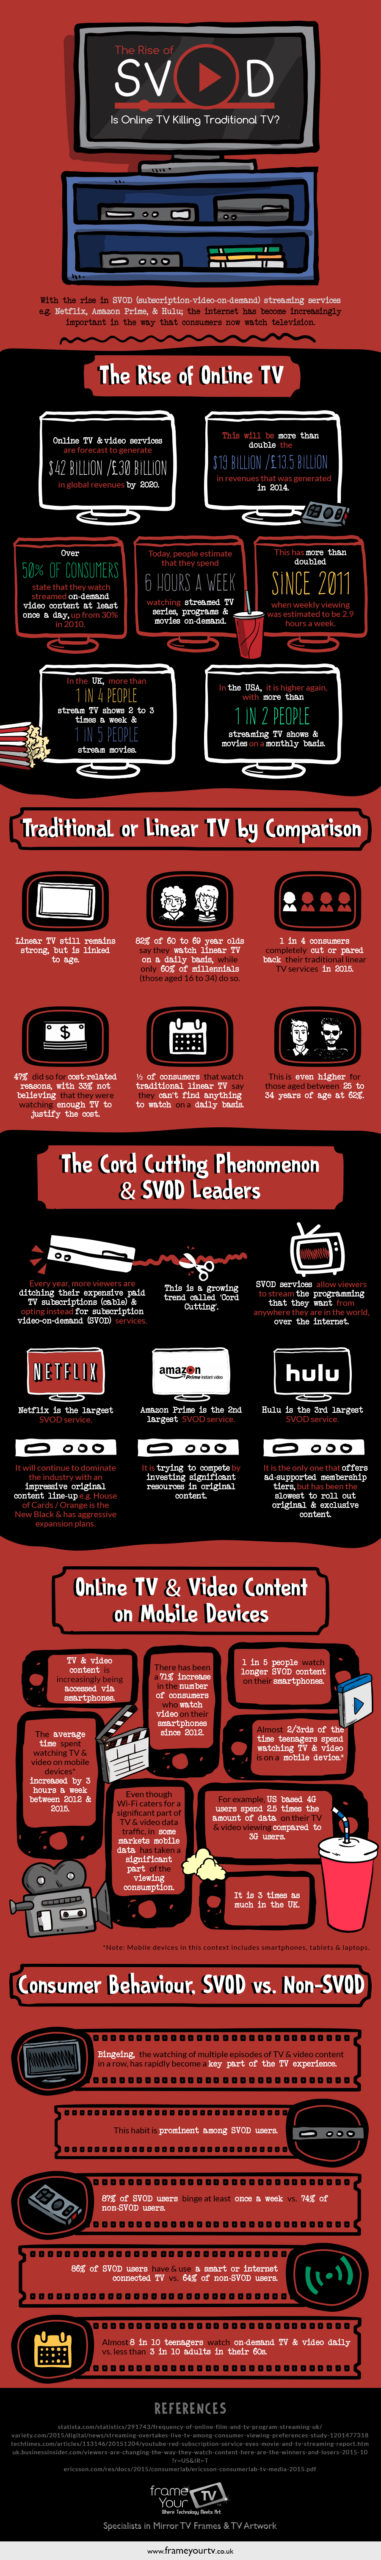 Is Online TV Killing Traditional TV? (Infographic)